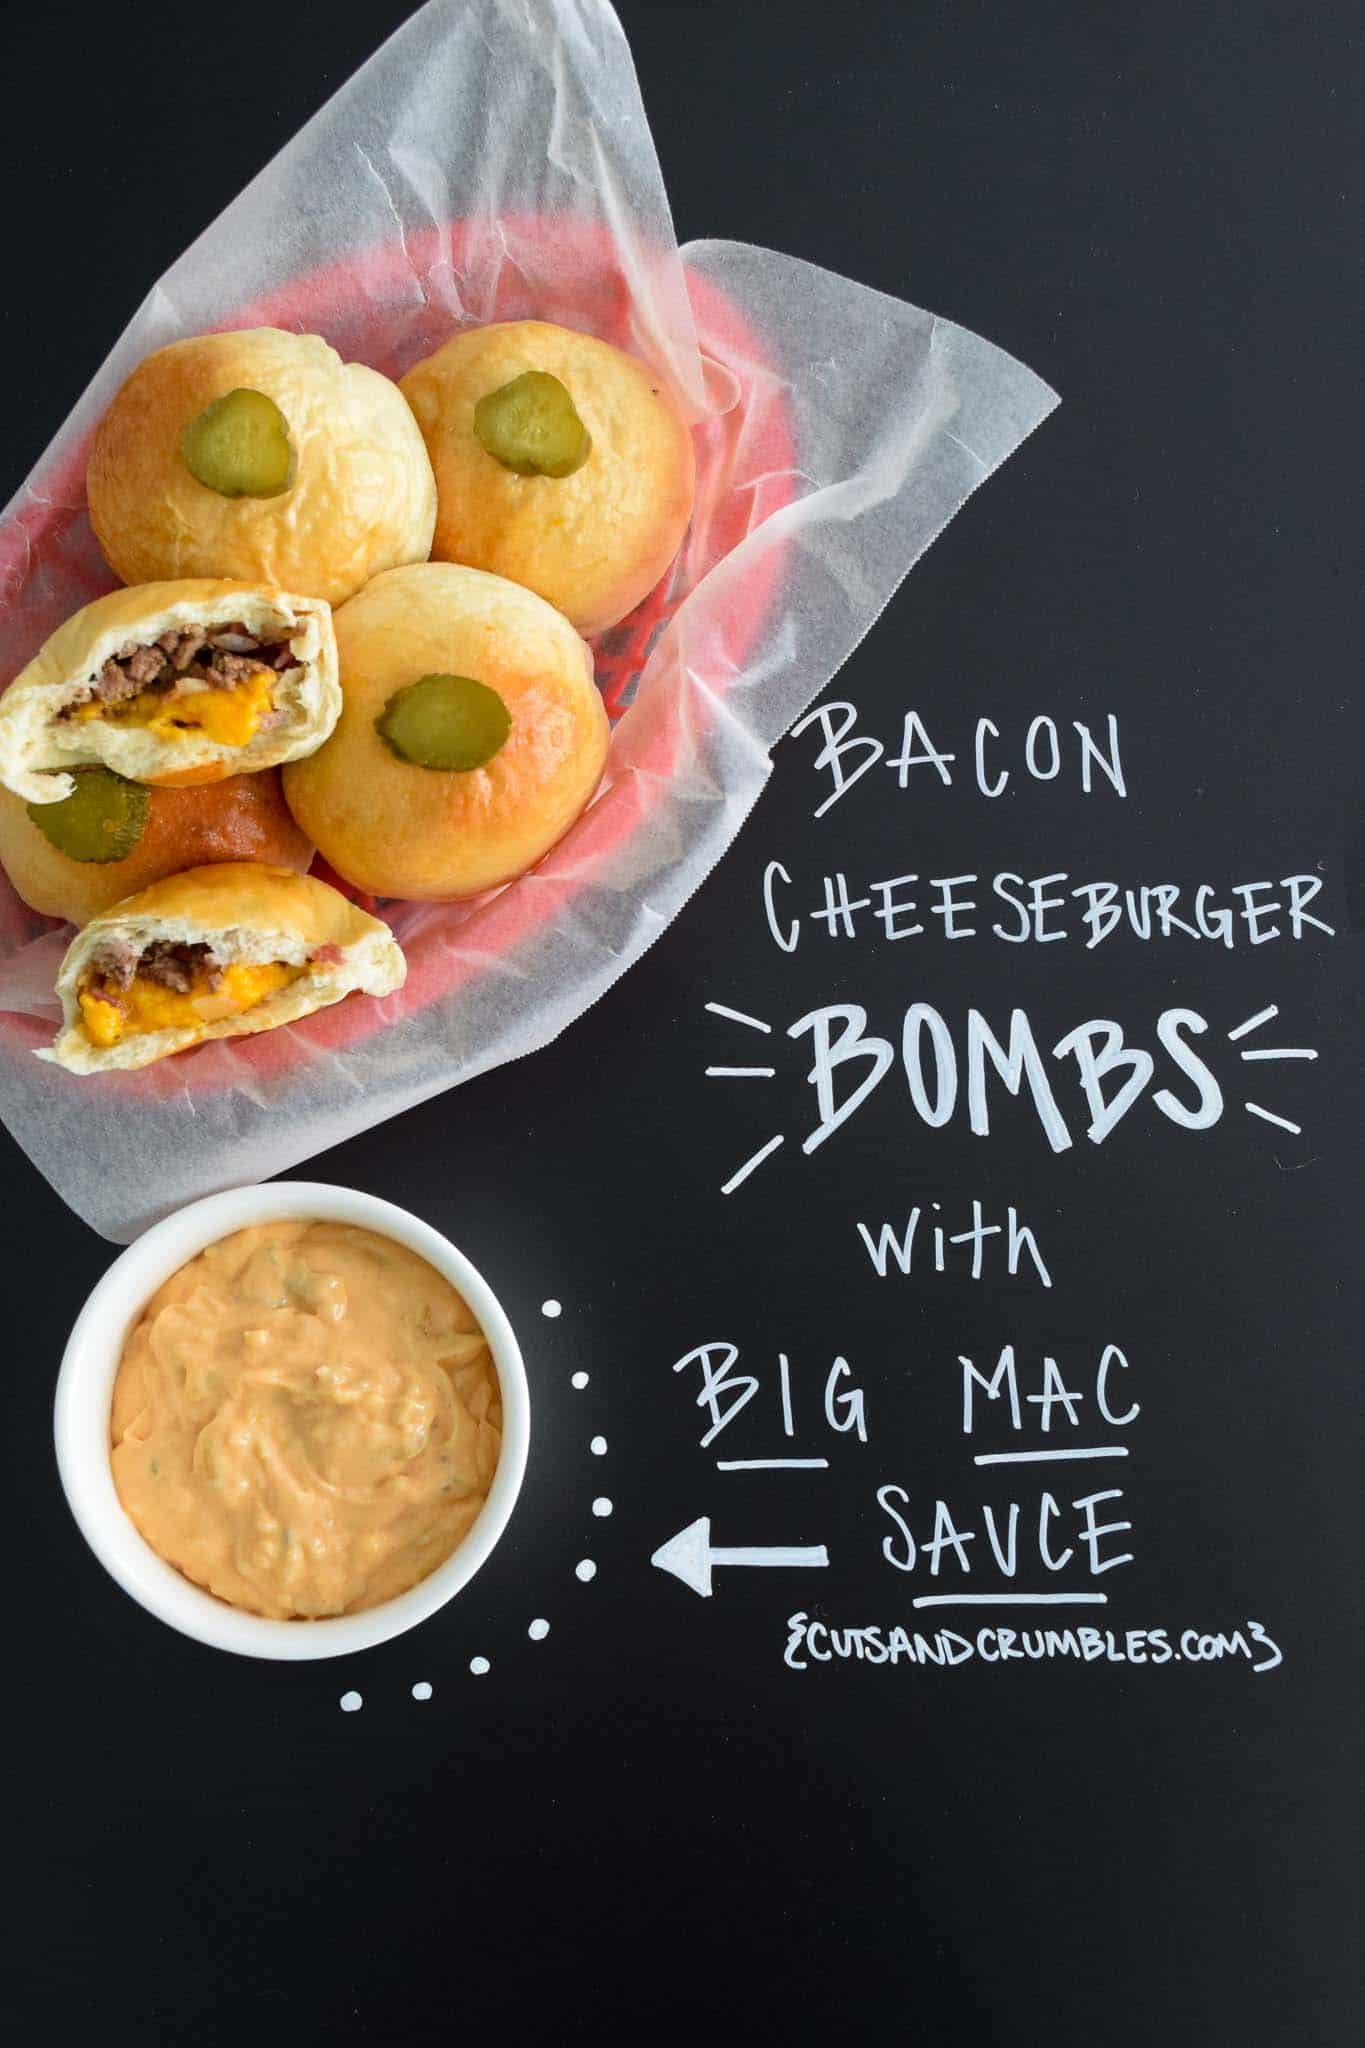 Bacon Cheeseburger Bombs with Big Mac Sauce with title written on chalkboard